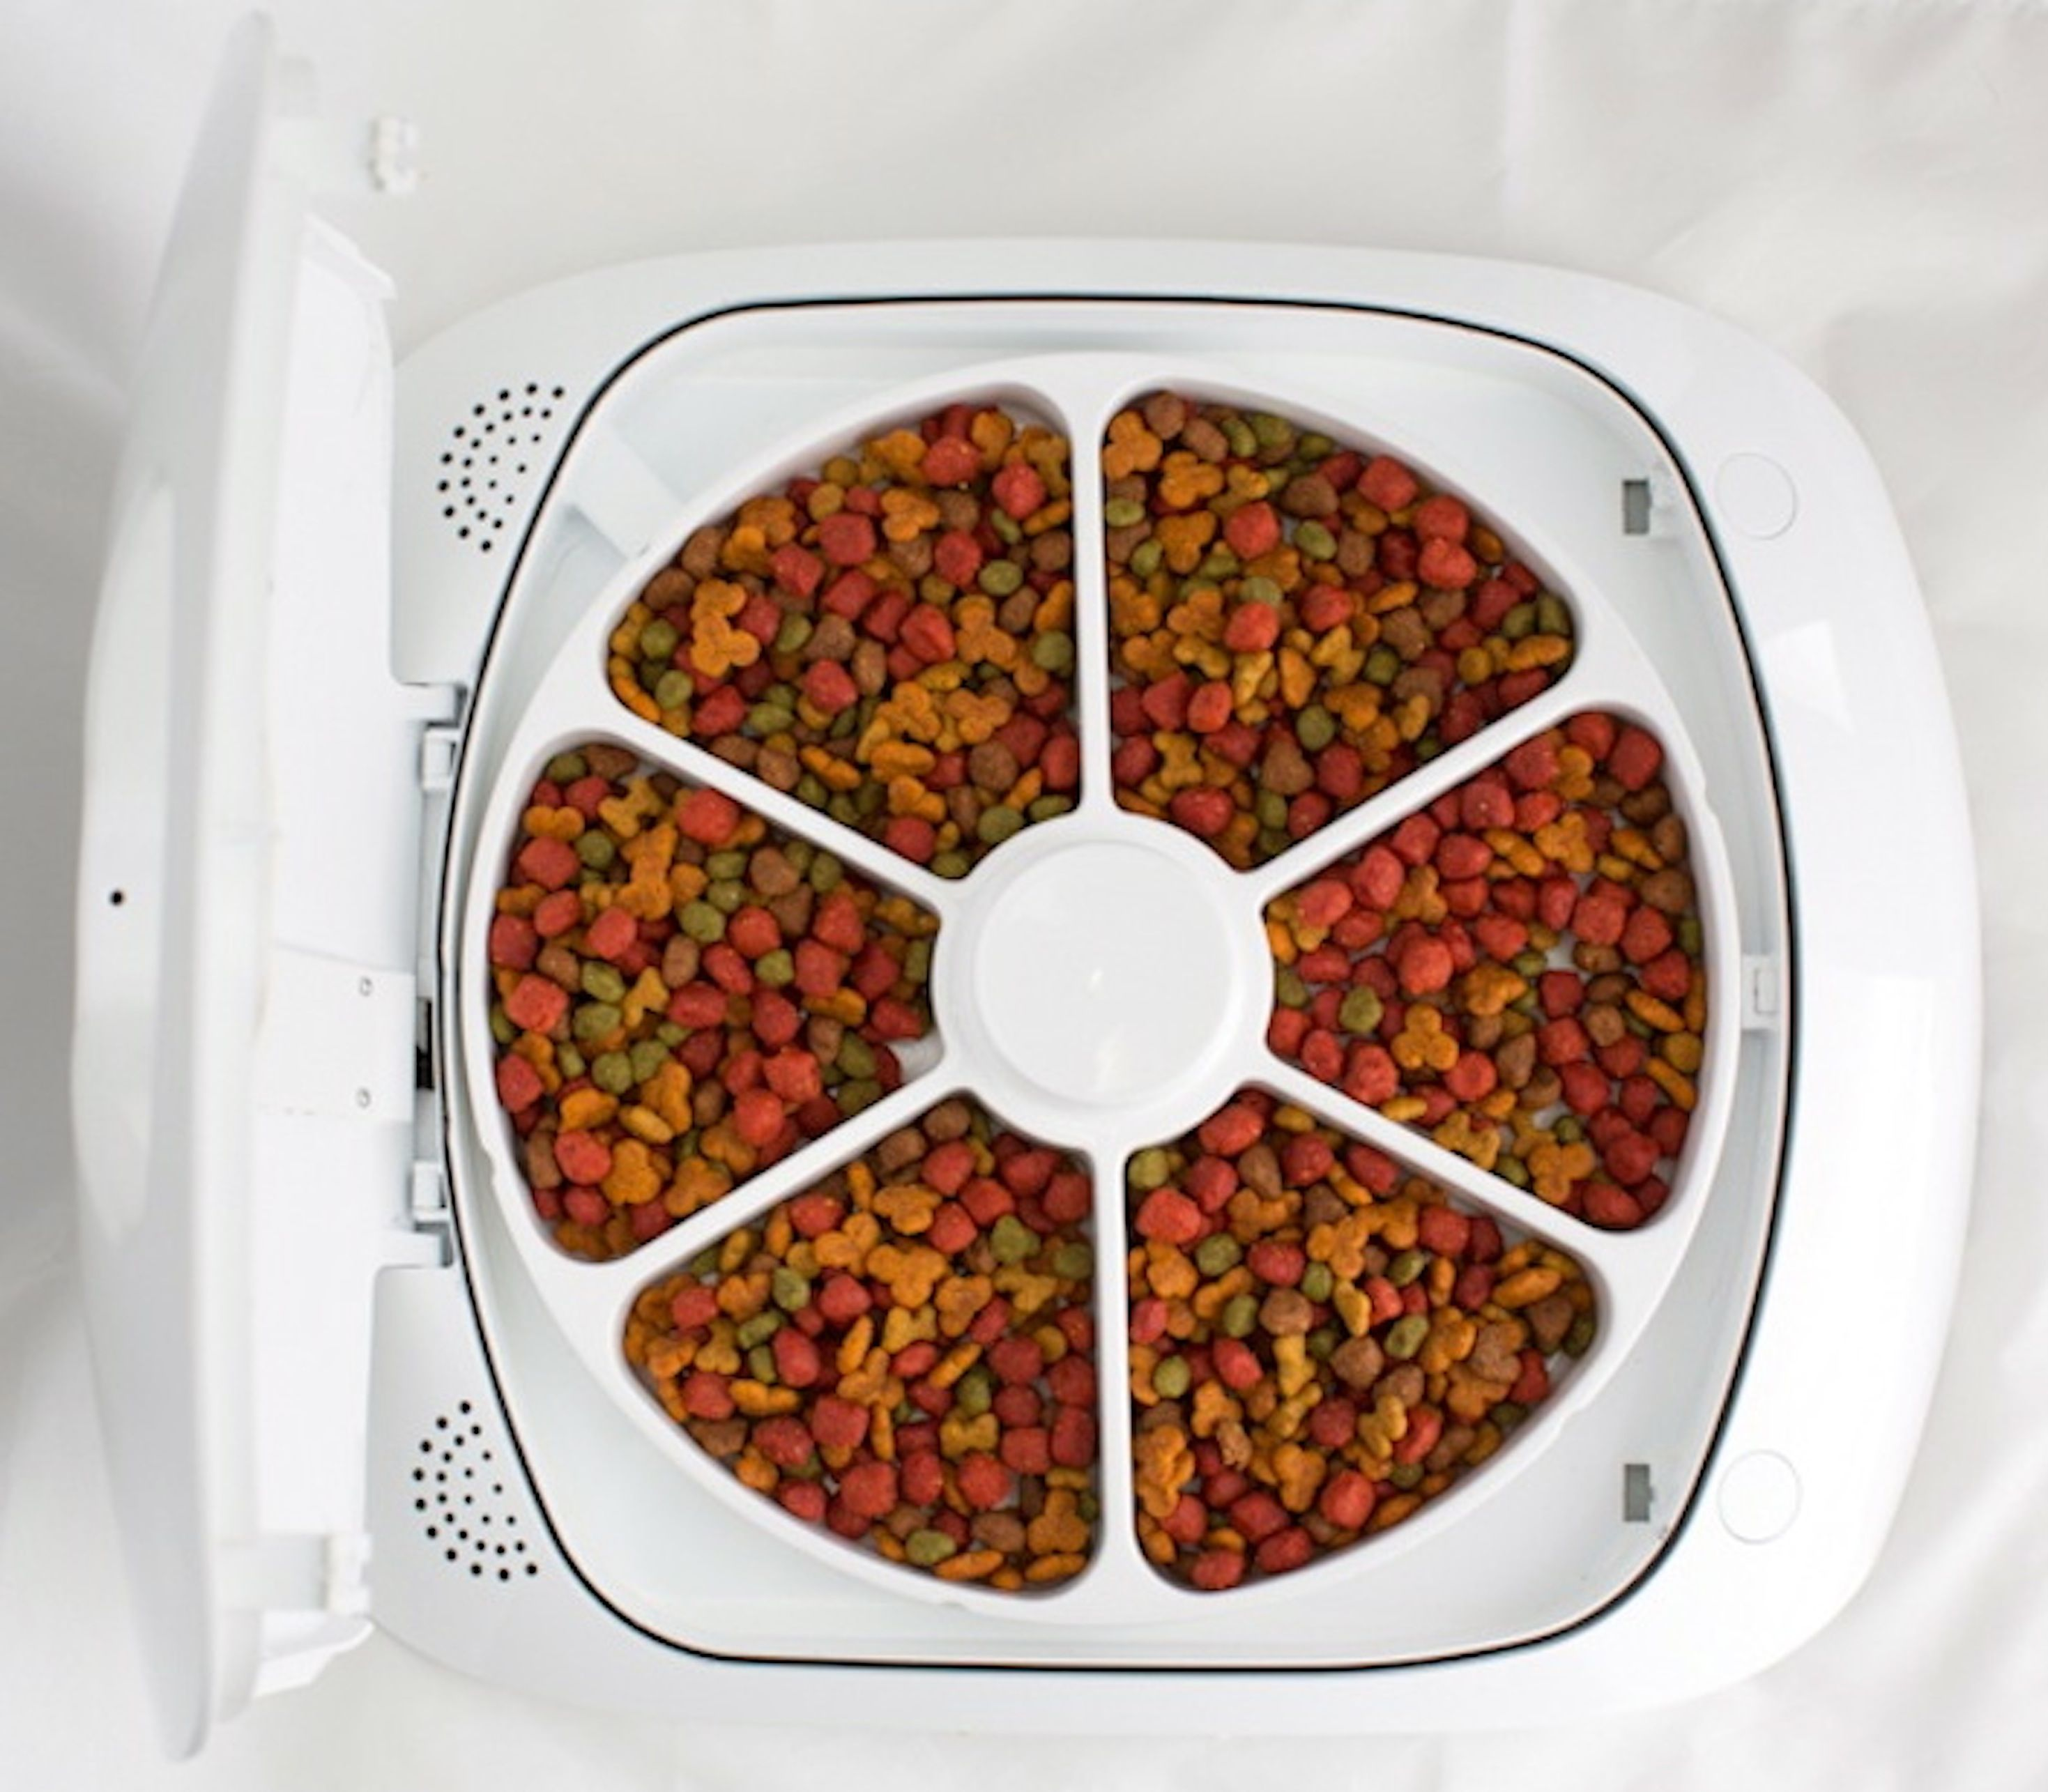 should my feed feeding clinic shutterstock timed cat feeder i diet london wet pet the food what advice